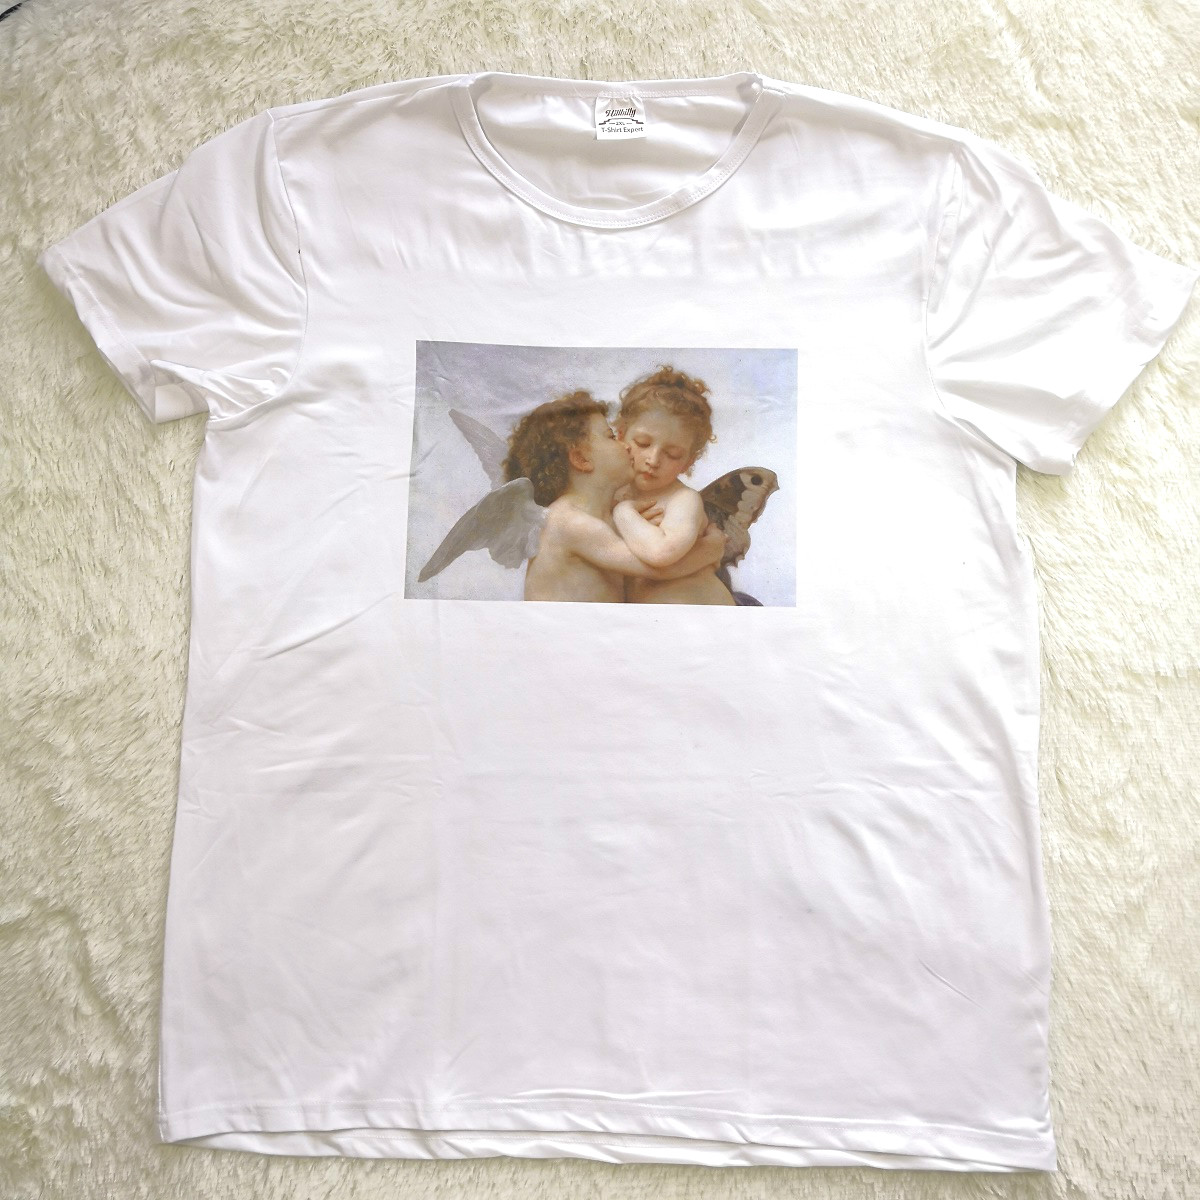 07d671cf9e US $9.6 40% OFF|Hillbilly Funny Baby Angels Printed Women Tshirt Off White  SummerTop Plus Size Design O neck Model Top Tee Casual T shirt Women-in ...